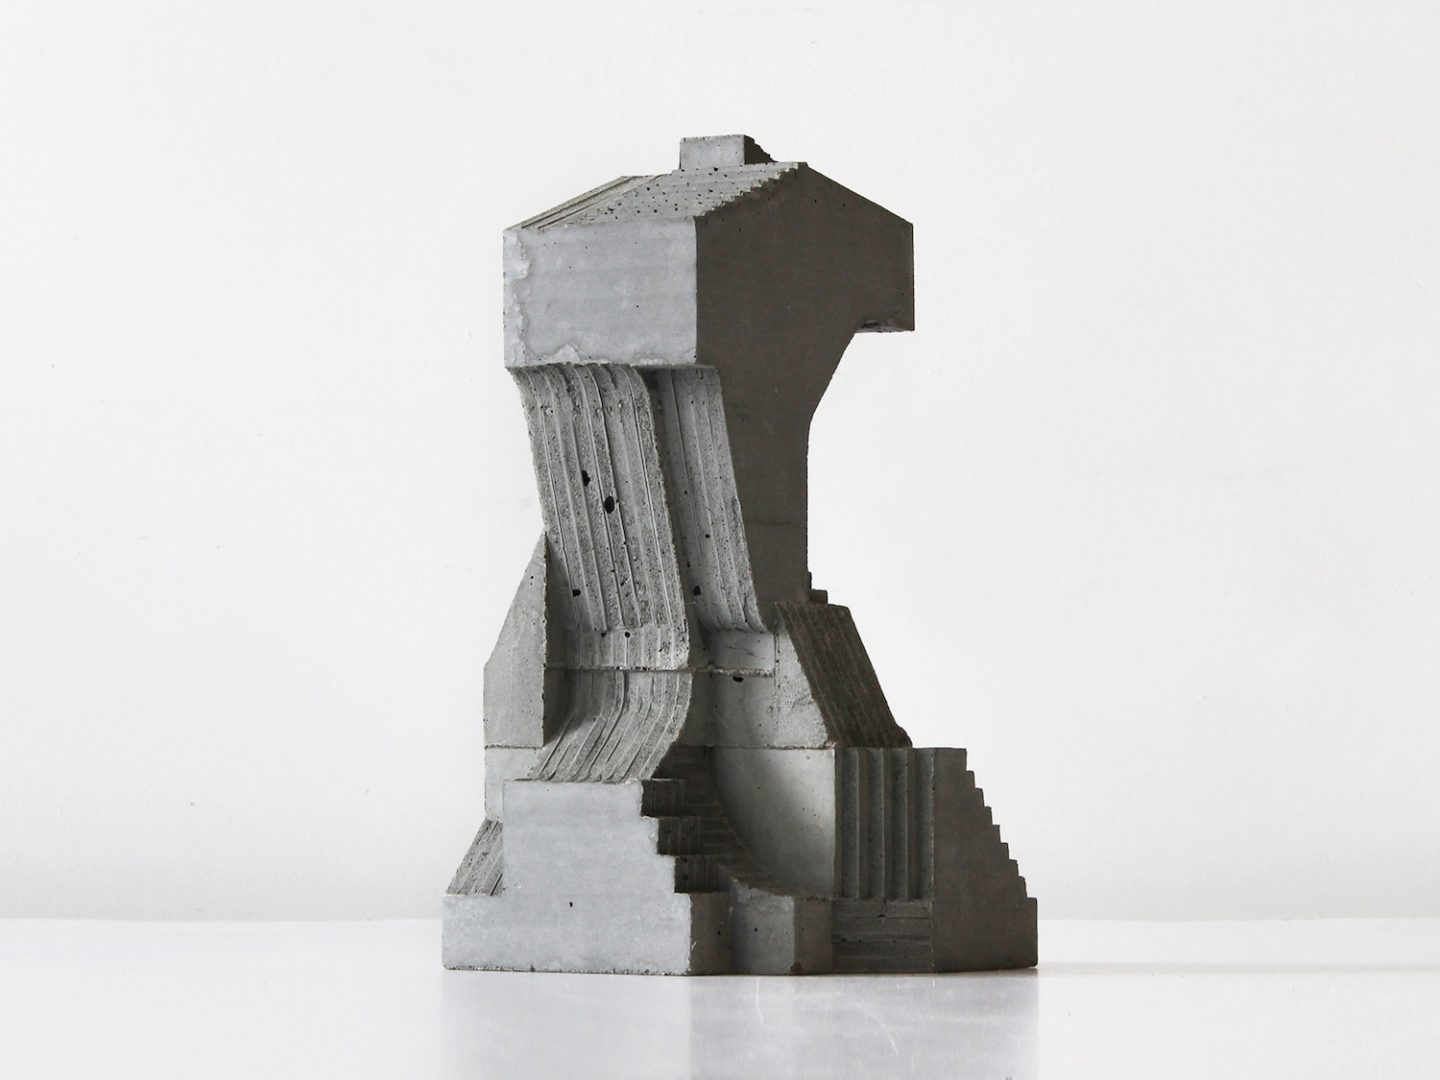 iGNANT_Art_Concrete_Modular_Sculptures_David_Umemoto07